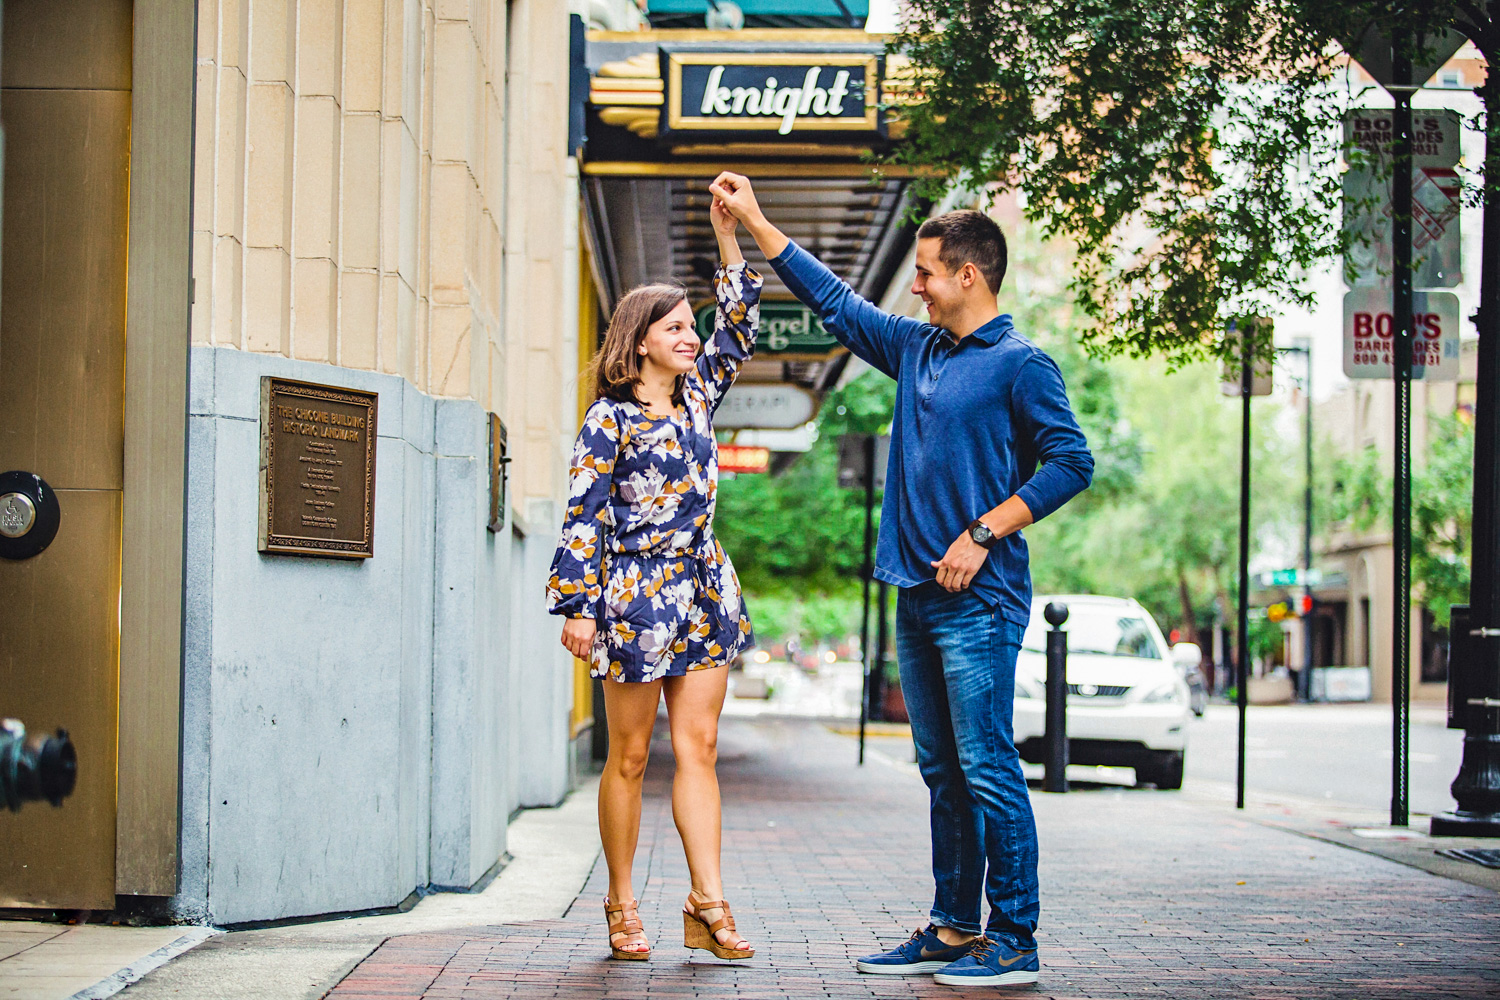 18 Sep 15Allie + David - Church Street Downtown orlando walkabout engagement - organic wedding photography 04.jpg